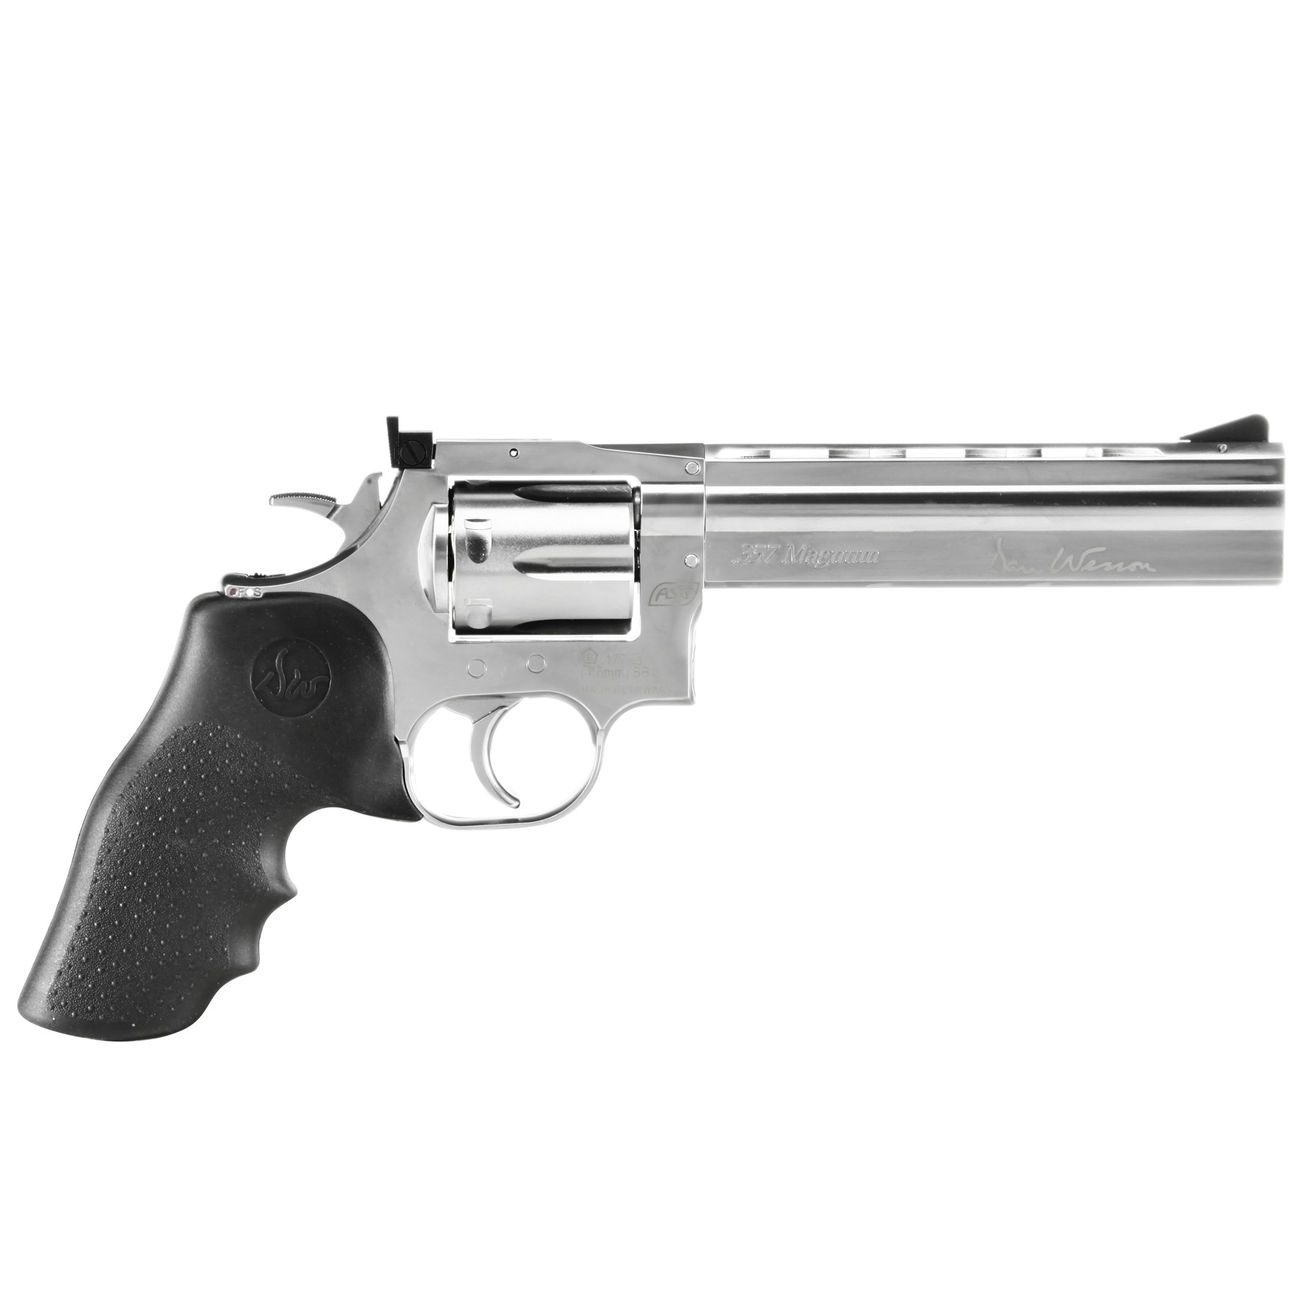 ASG Dan Wesson 715 CO2 Revolver 6 Zoll Kal. 4,5mm BB Starterset 2